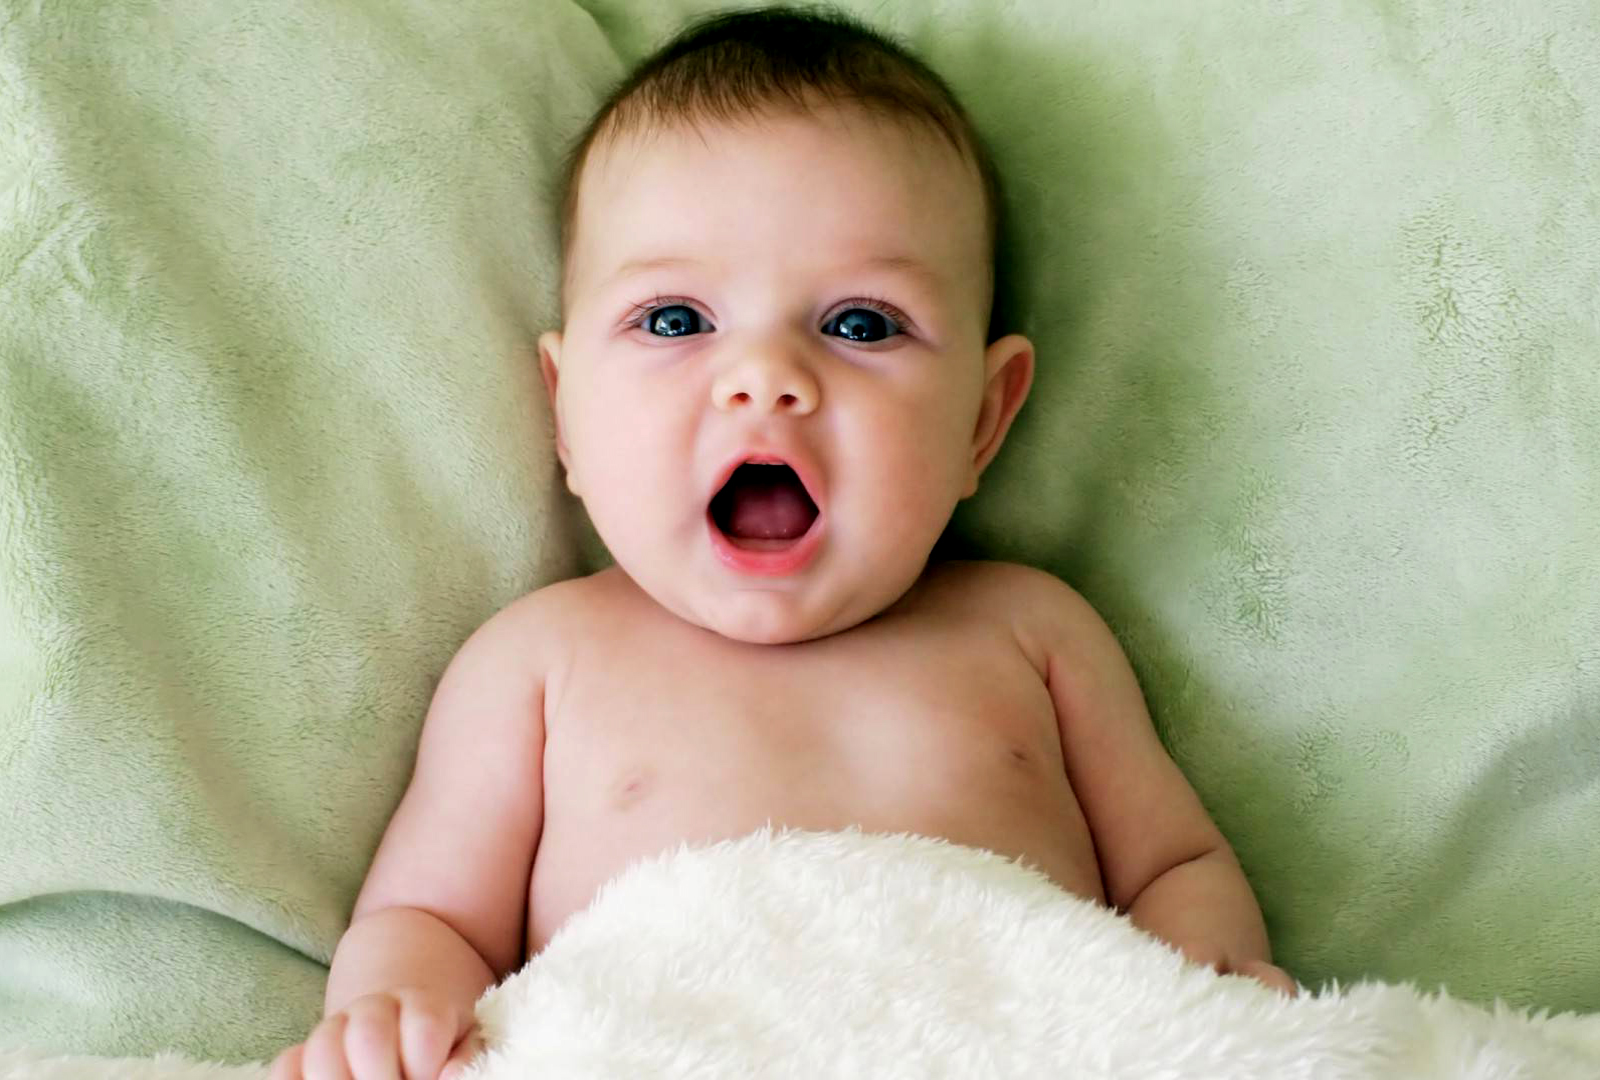 Cute Baby Boy Wallpapers For Facebook Profile Baby Wall 1600x1080